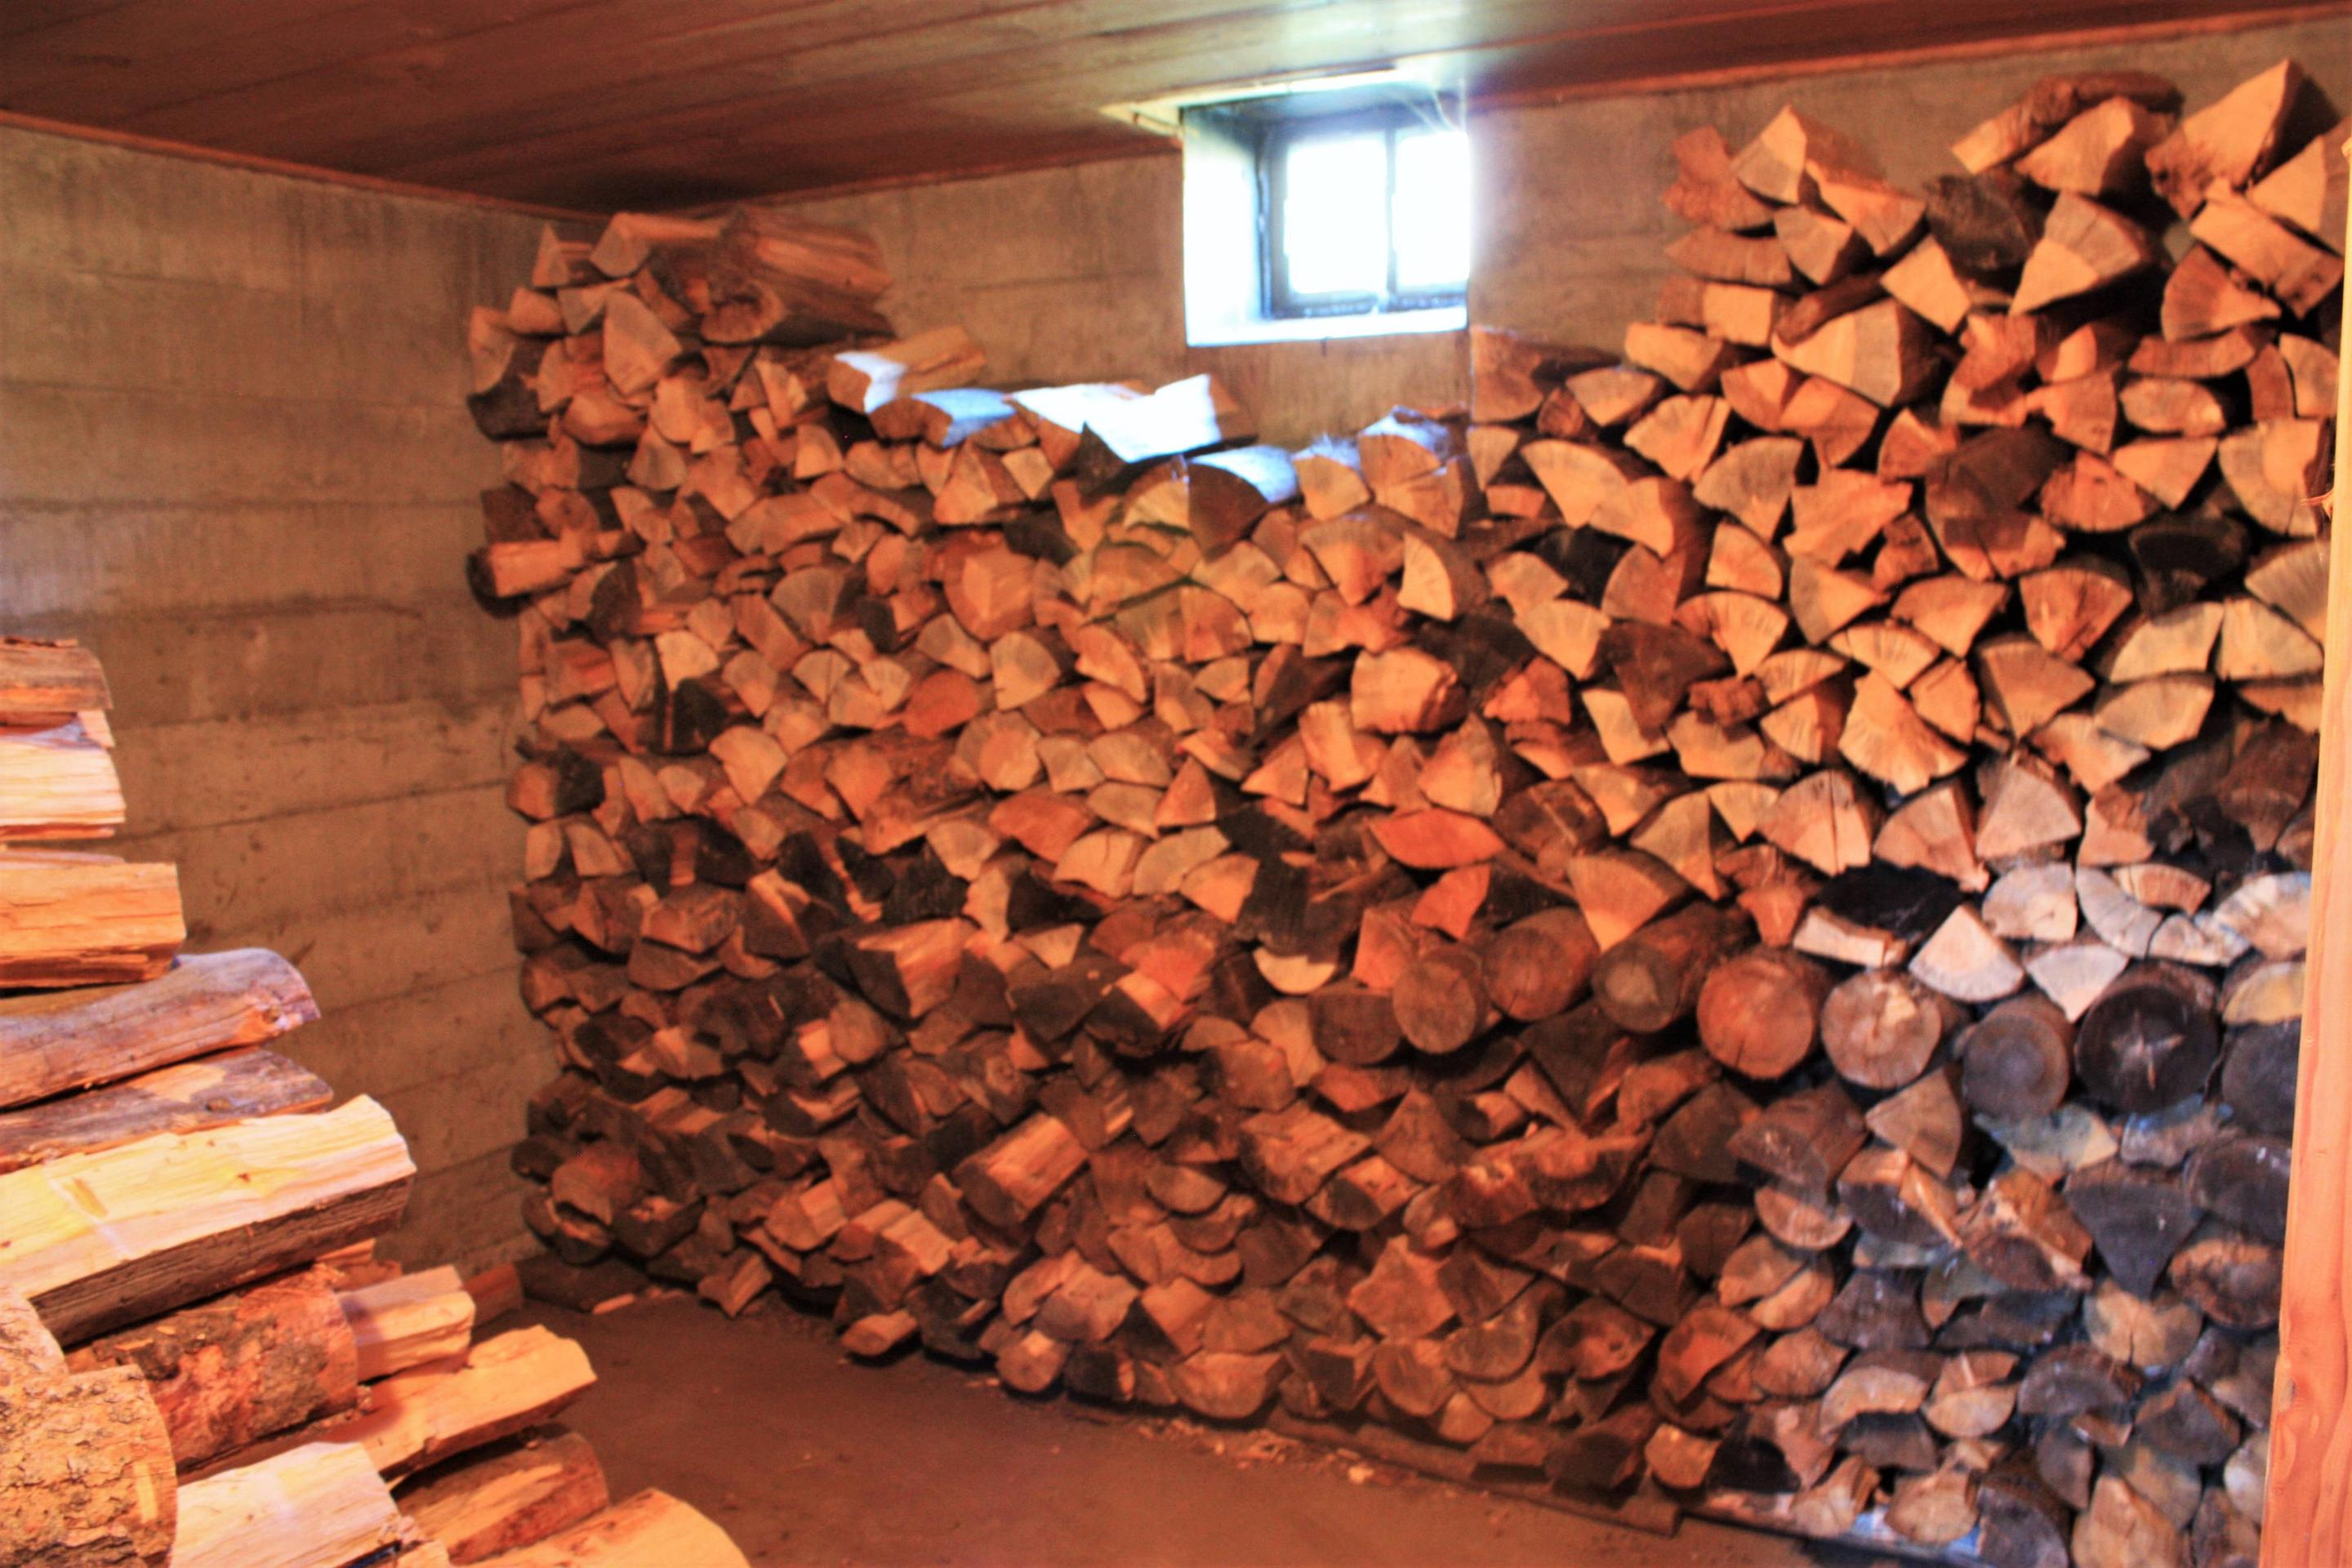 Keystone Ranger Station indoor woodpile